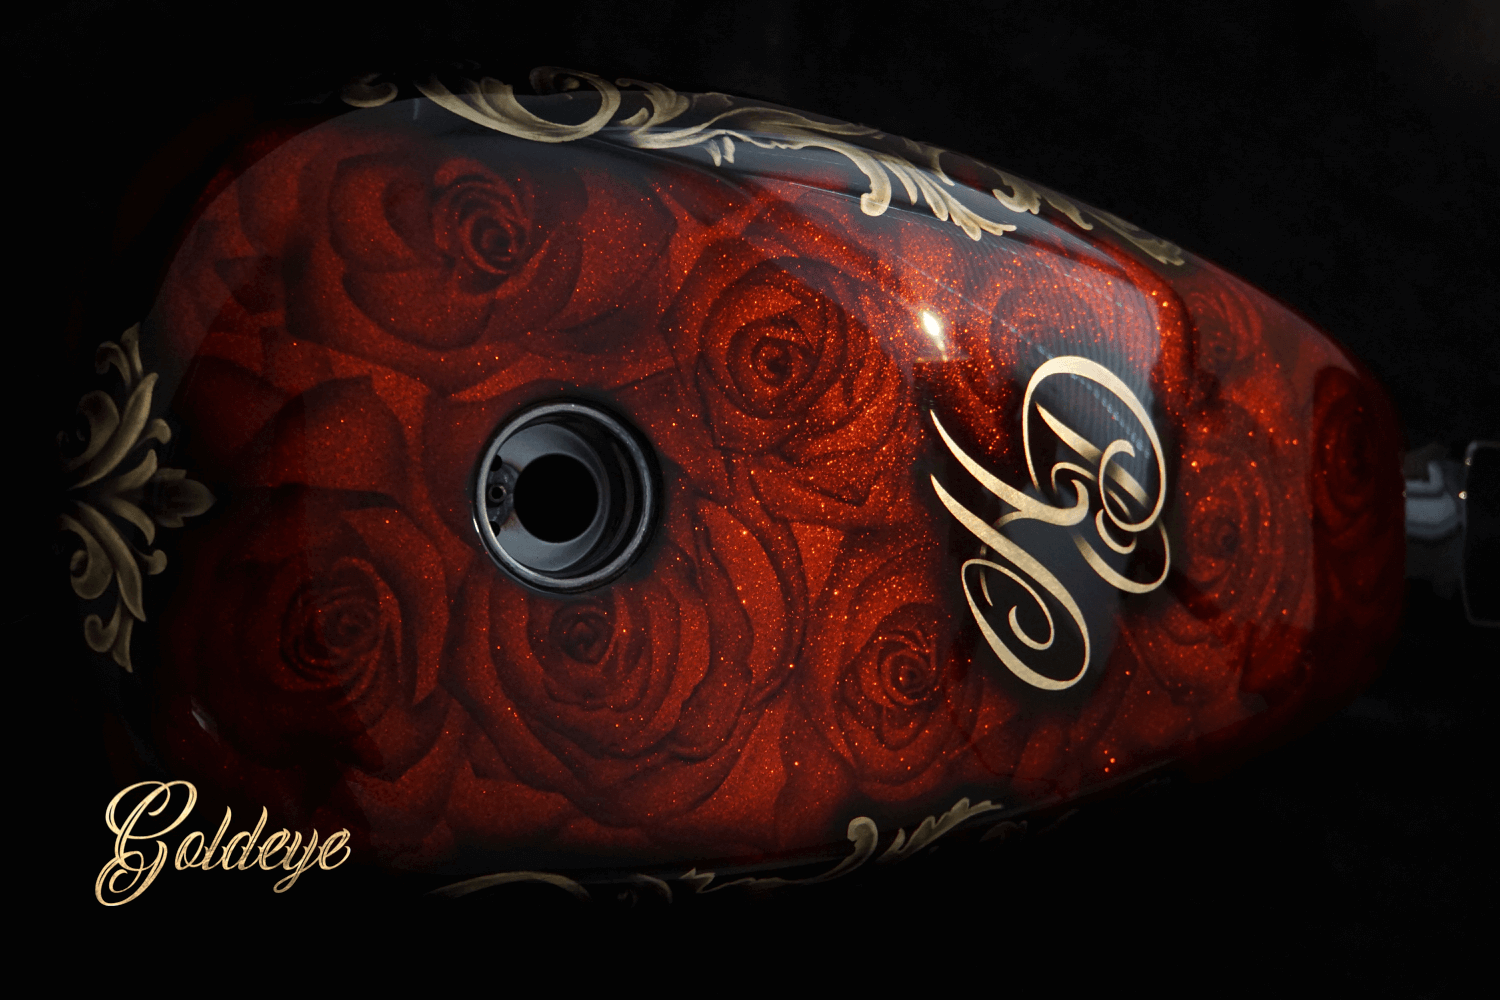 Custom Paint Harley Davidson Sportster 48 Rosen Airbrush, Gold, Metalflakes Rot-Orange von Goldeye